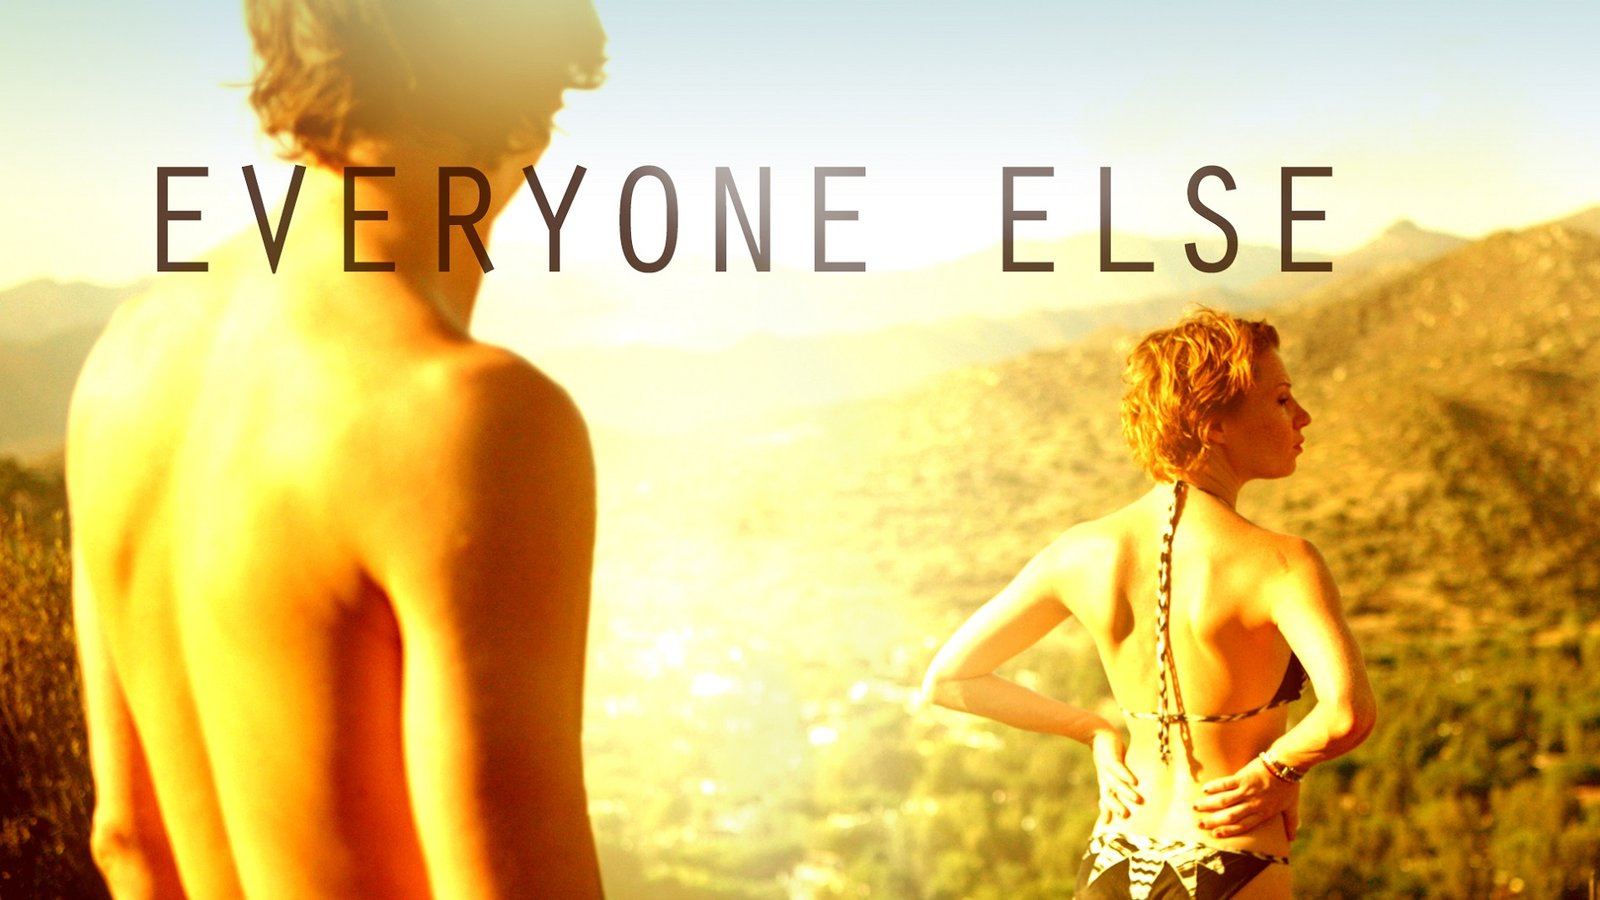 Everyone Else - Alle Anderen